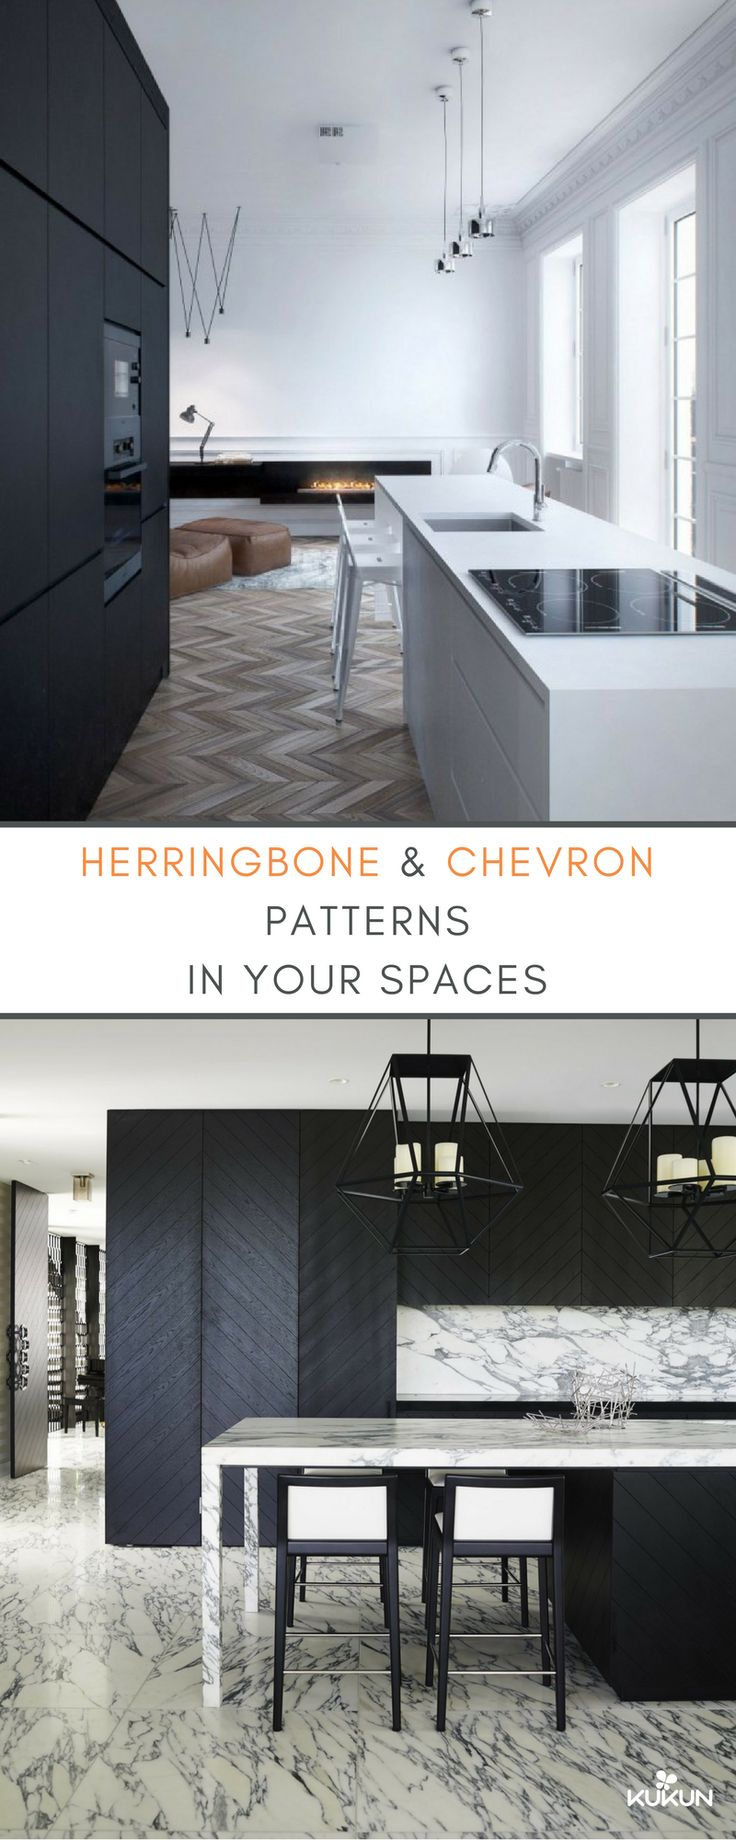 8 Rooms That Will Make You Rethink Herringbone and Chevrons. Chevron and  Herringbone patterns ...